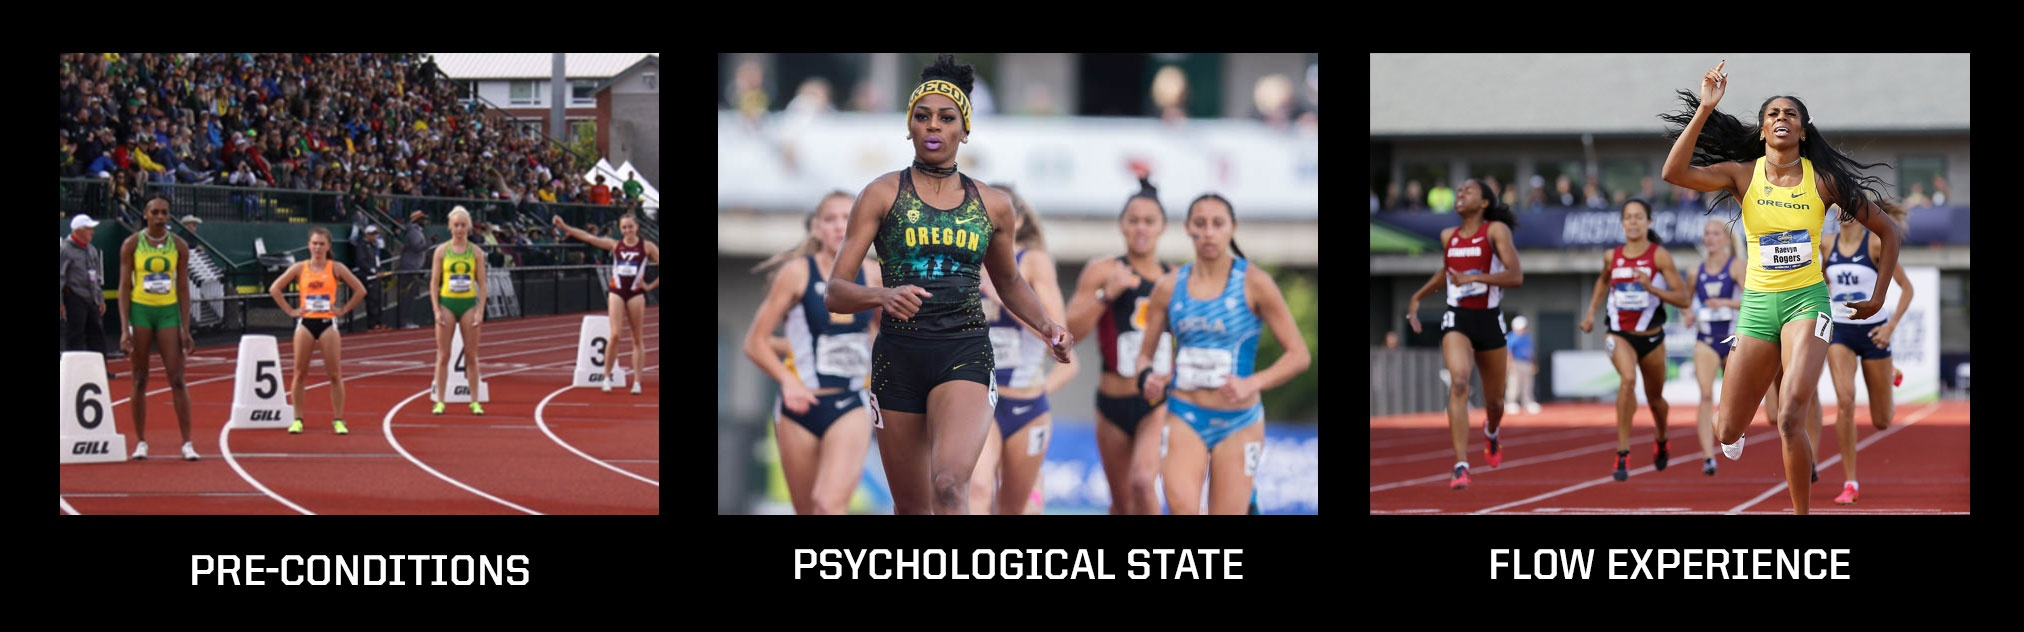 Image depicting track star Raevyn Rogers in pre-condition, psychological, and flow experience states